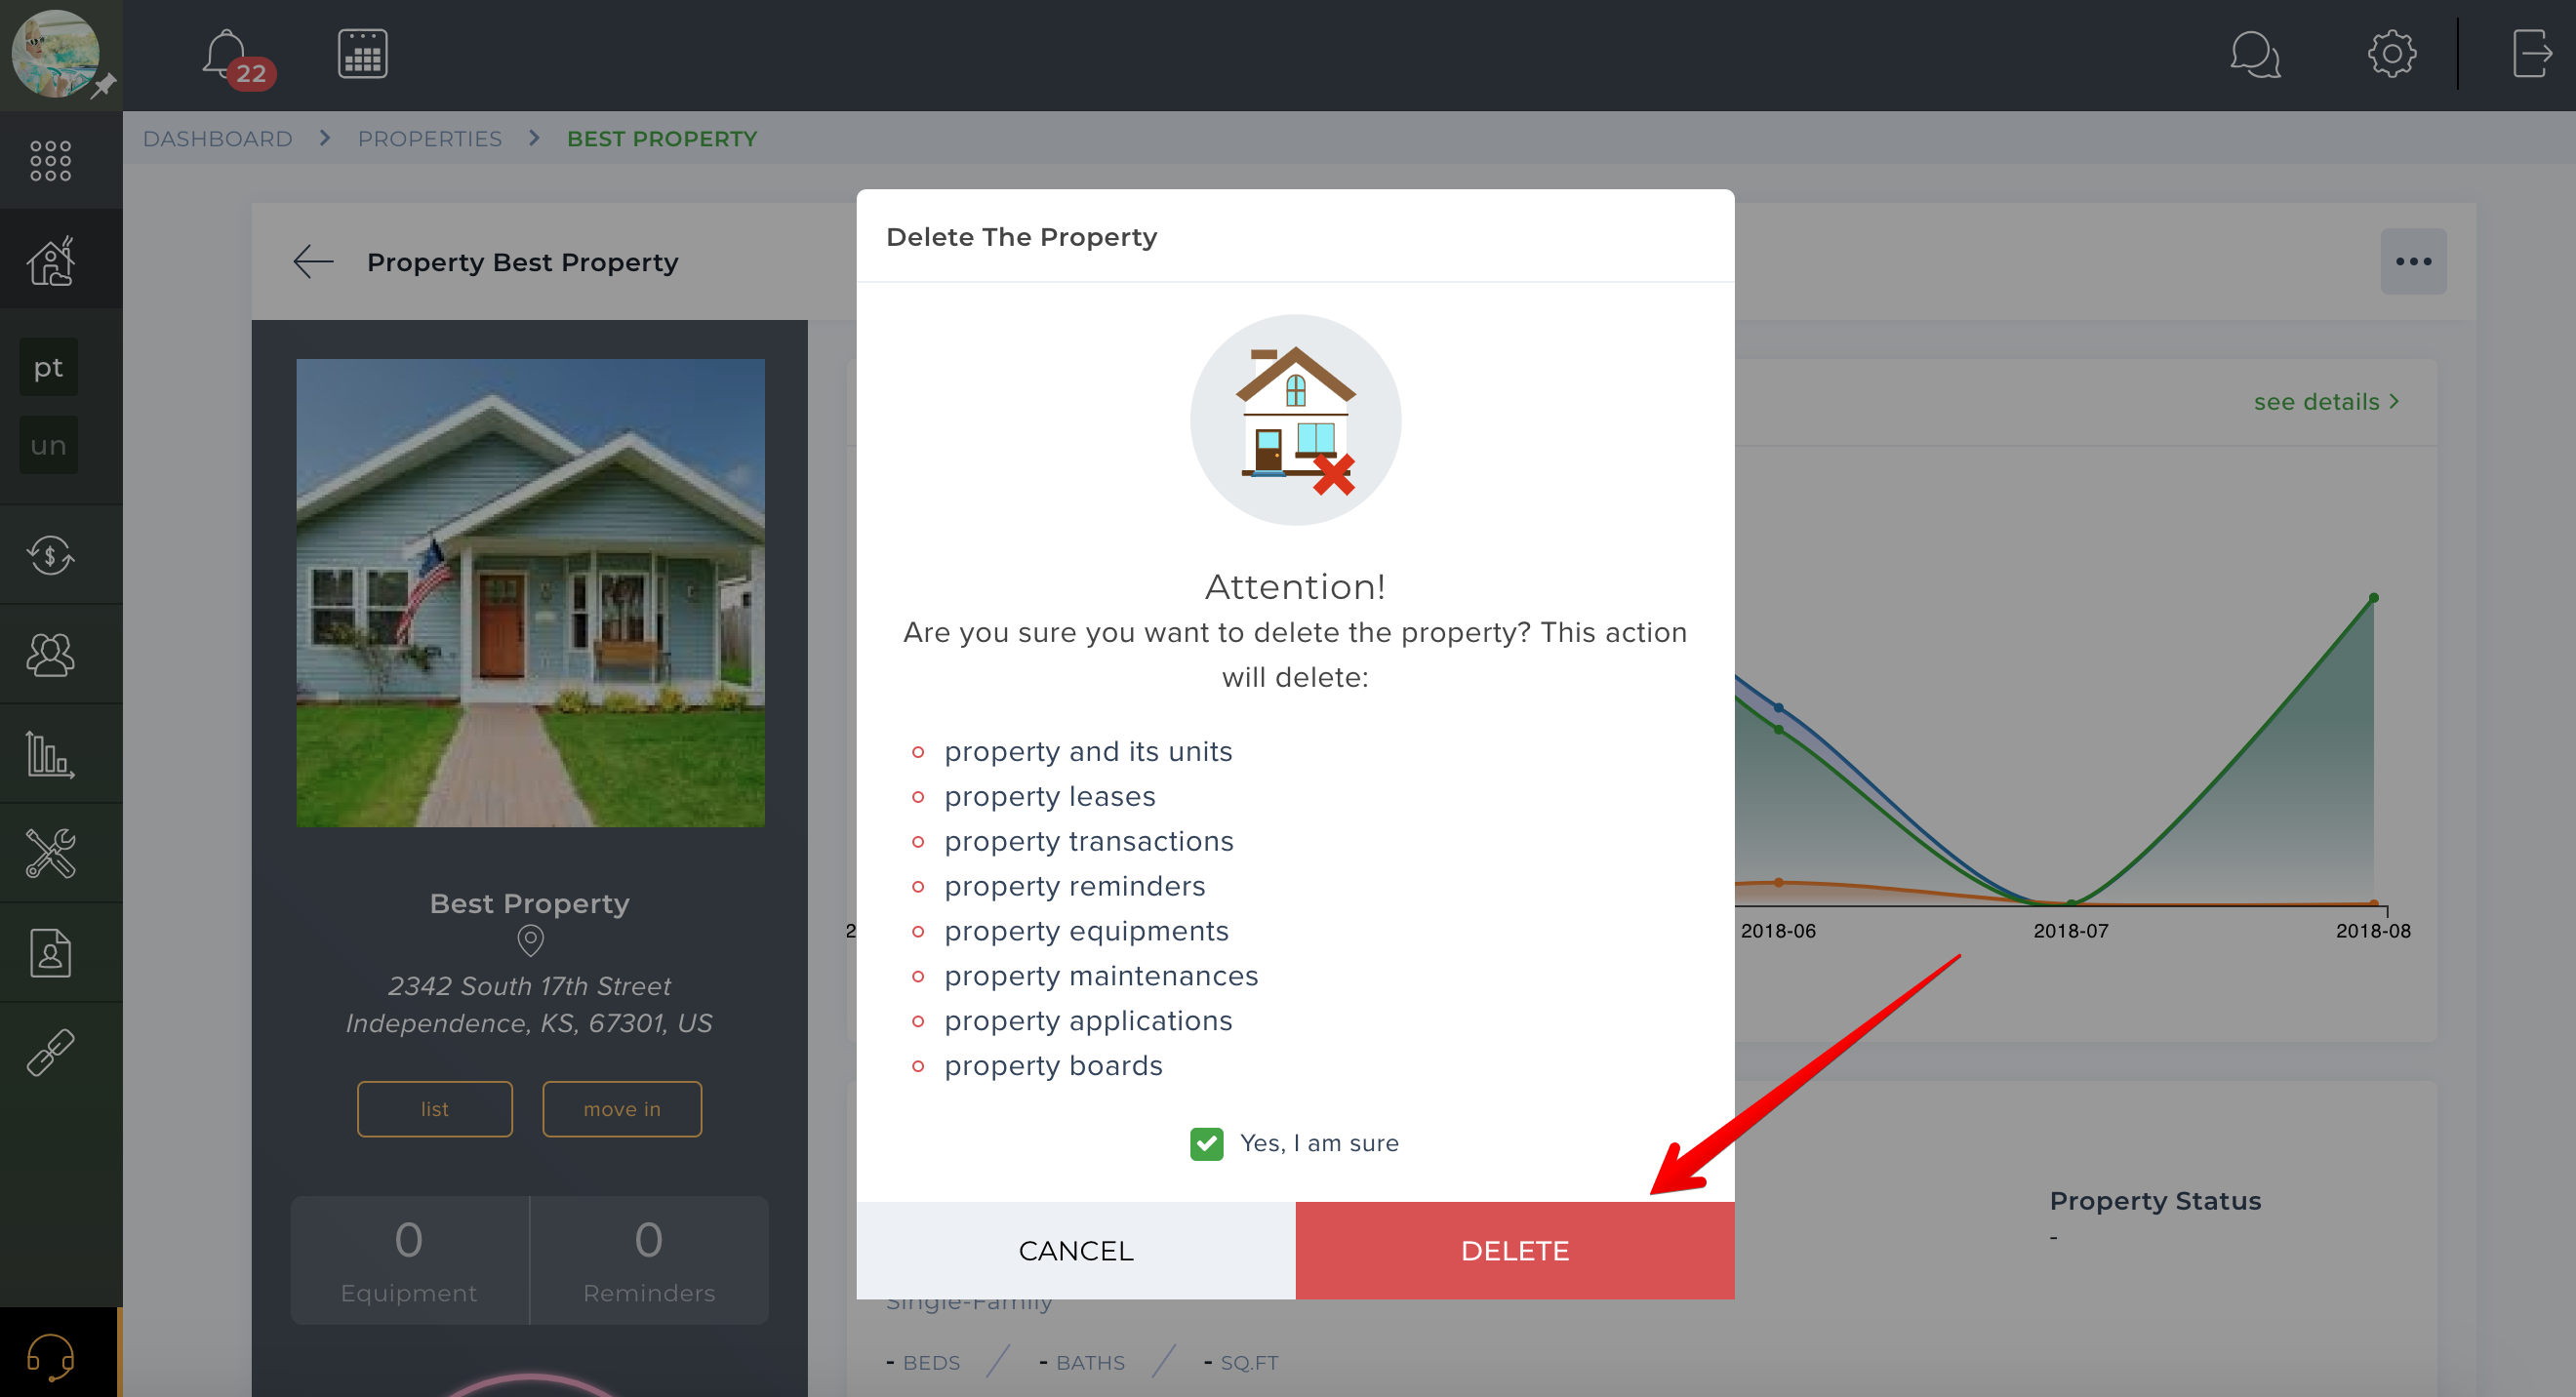 How to remove a property?